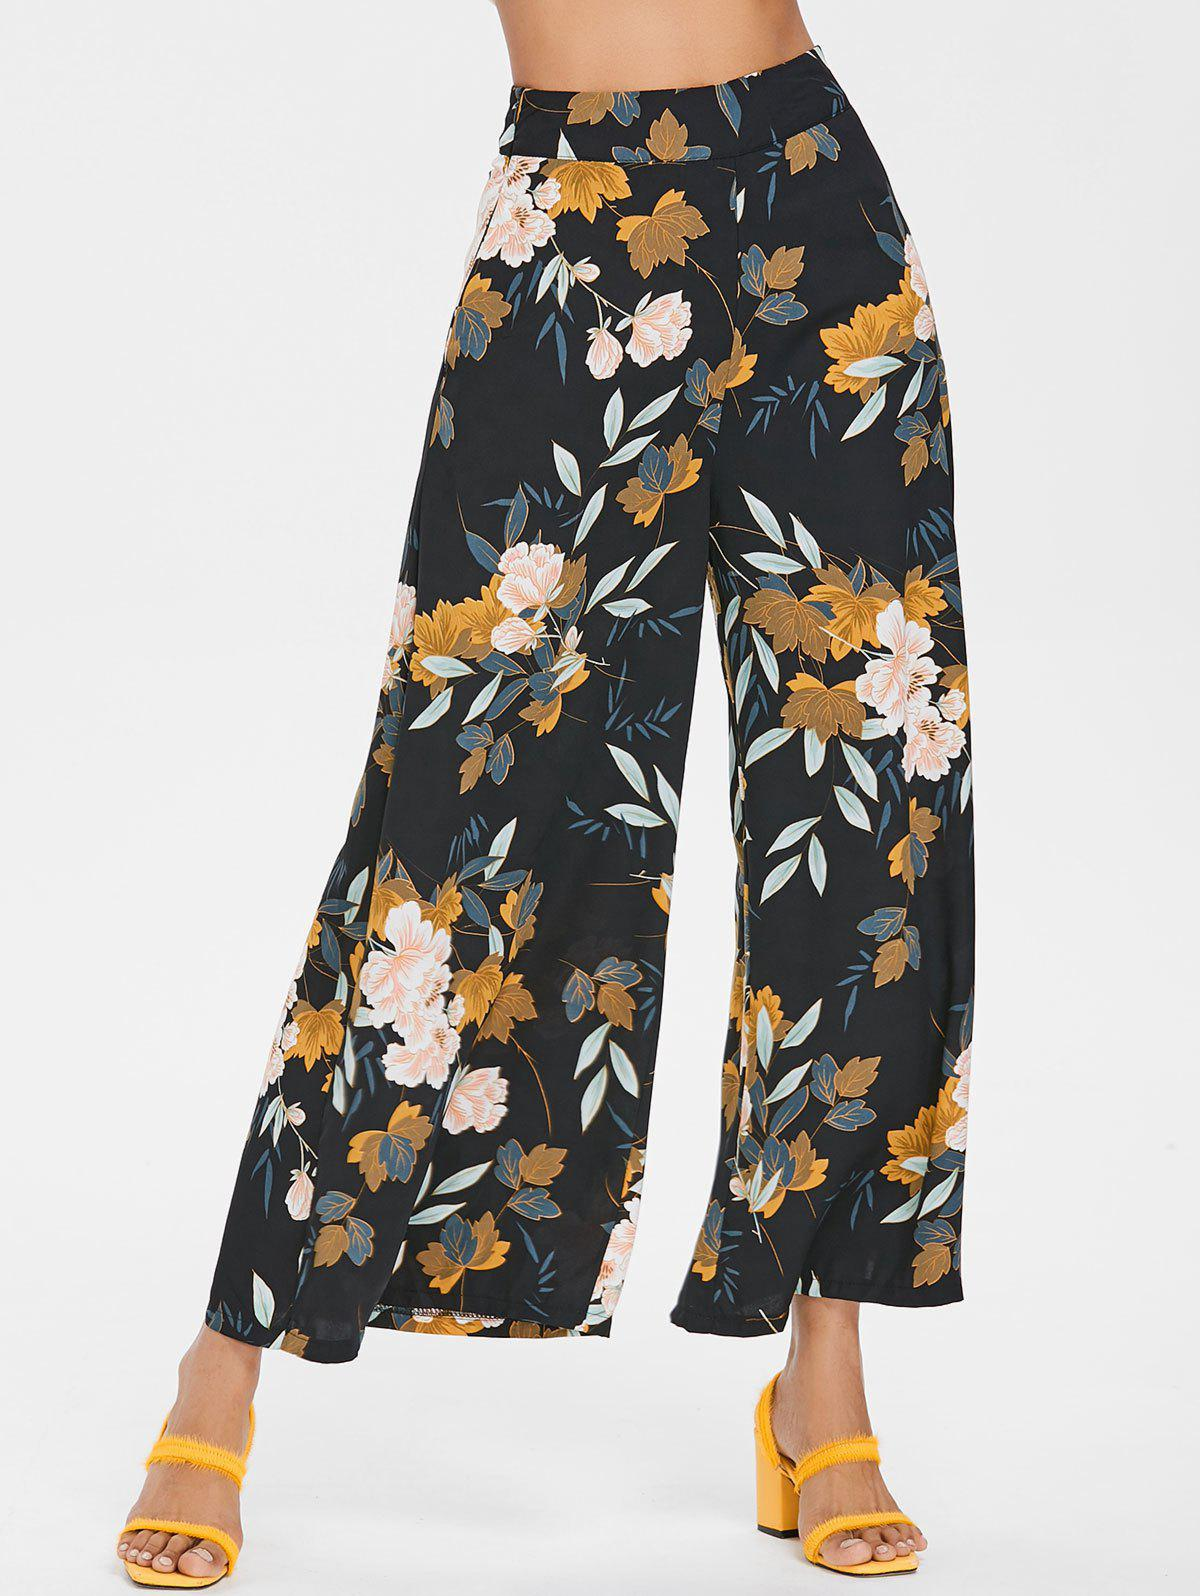 Best Bohemian High Rise Floral Palazzo Pants